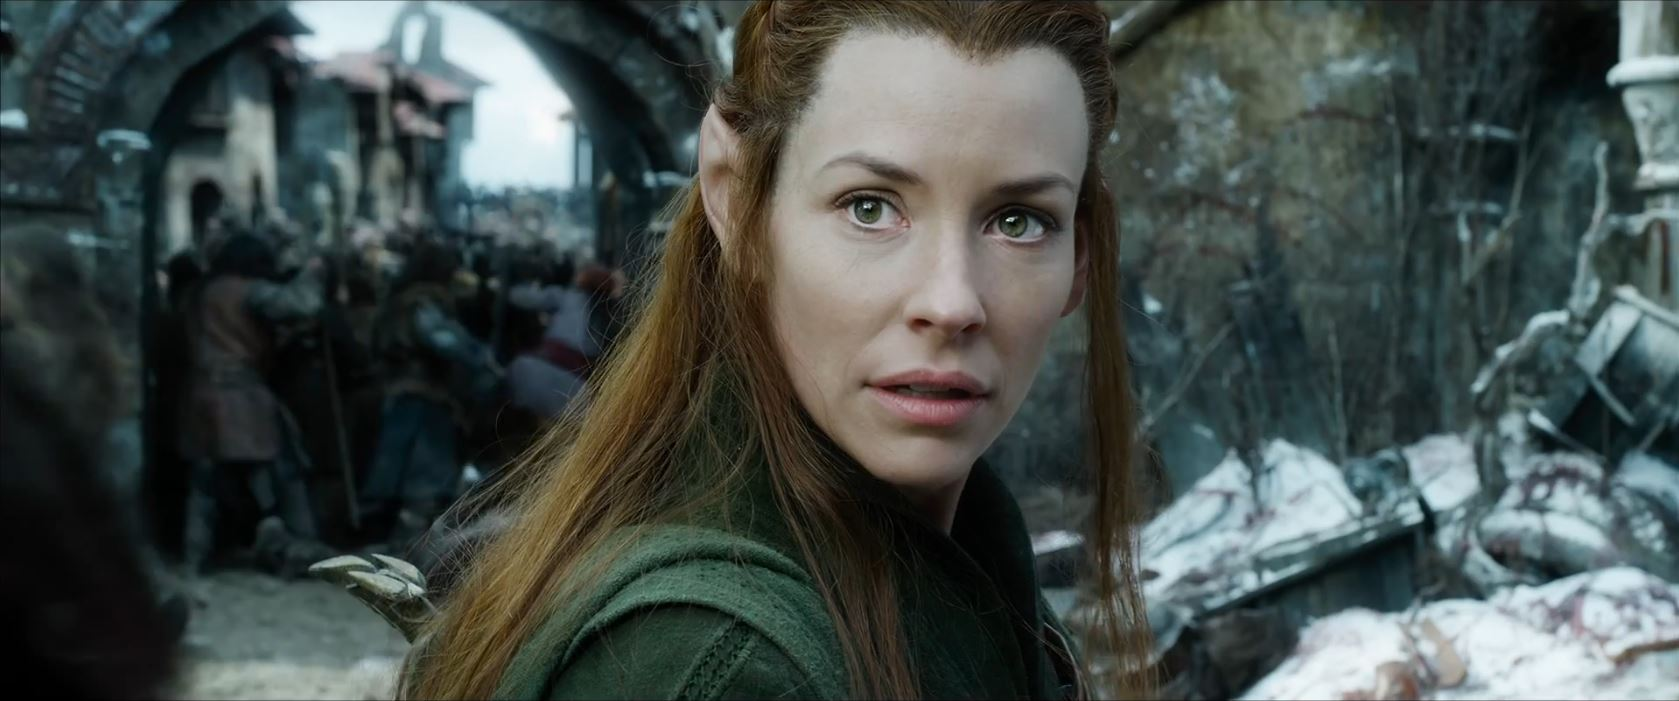 lilly legolas tauriel - photo #16